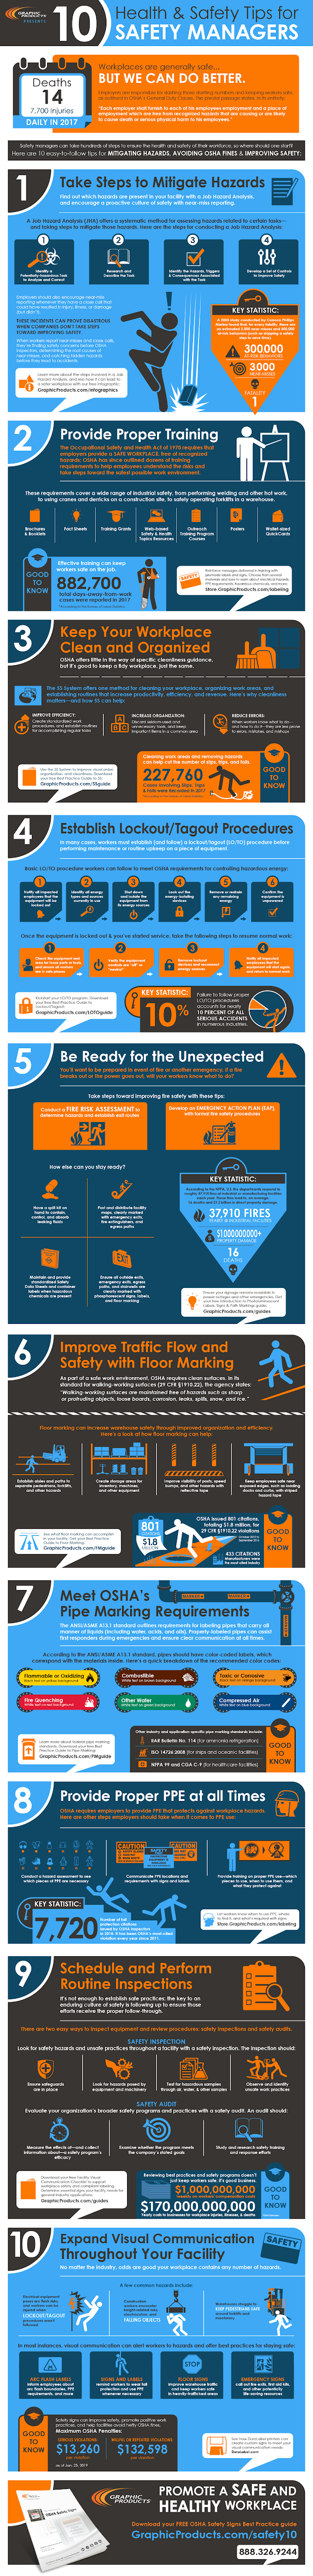 10 Health & Safety Tips For Safety Managers #infographic #Health & Safety #infographics #Safety Tips #Safety Managers #Infographic